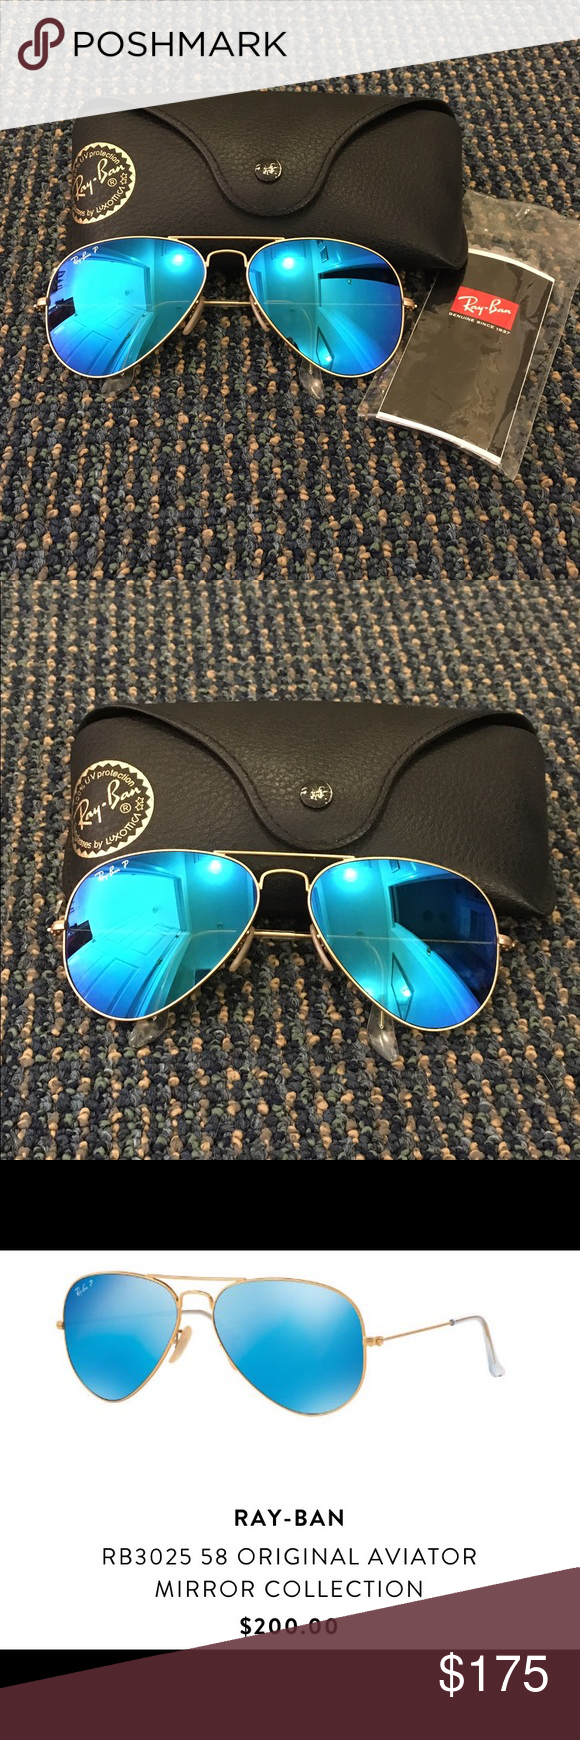 518c5e53910a Ray Ban RB3025 58 Original Aviator Gold Matte Blue Polarized Ray-Ban RB3025  58